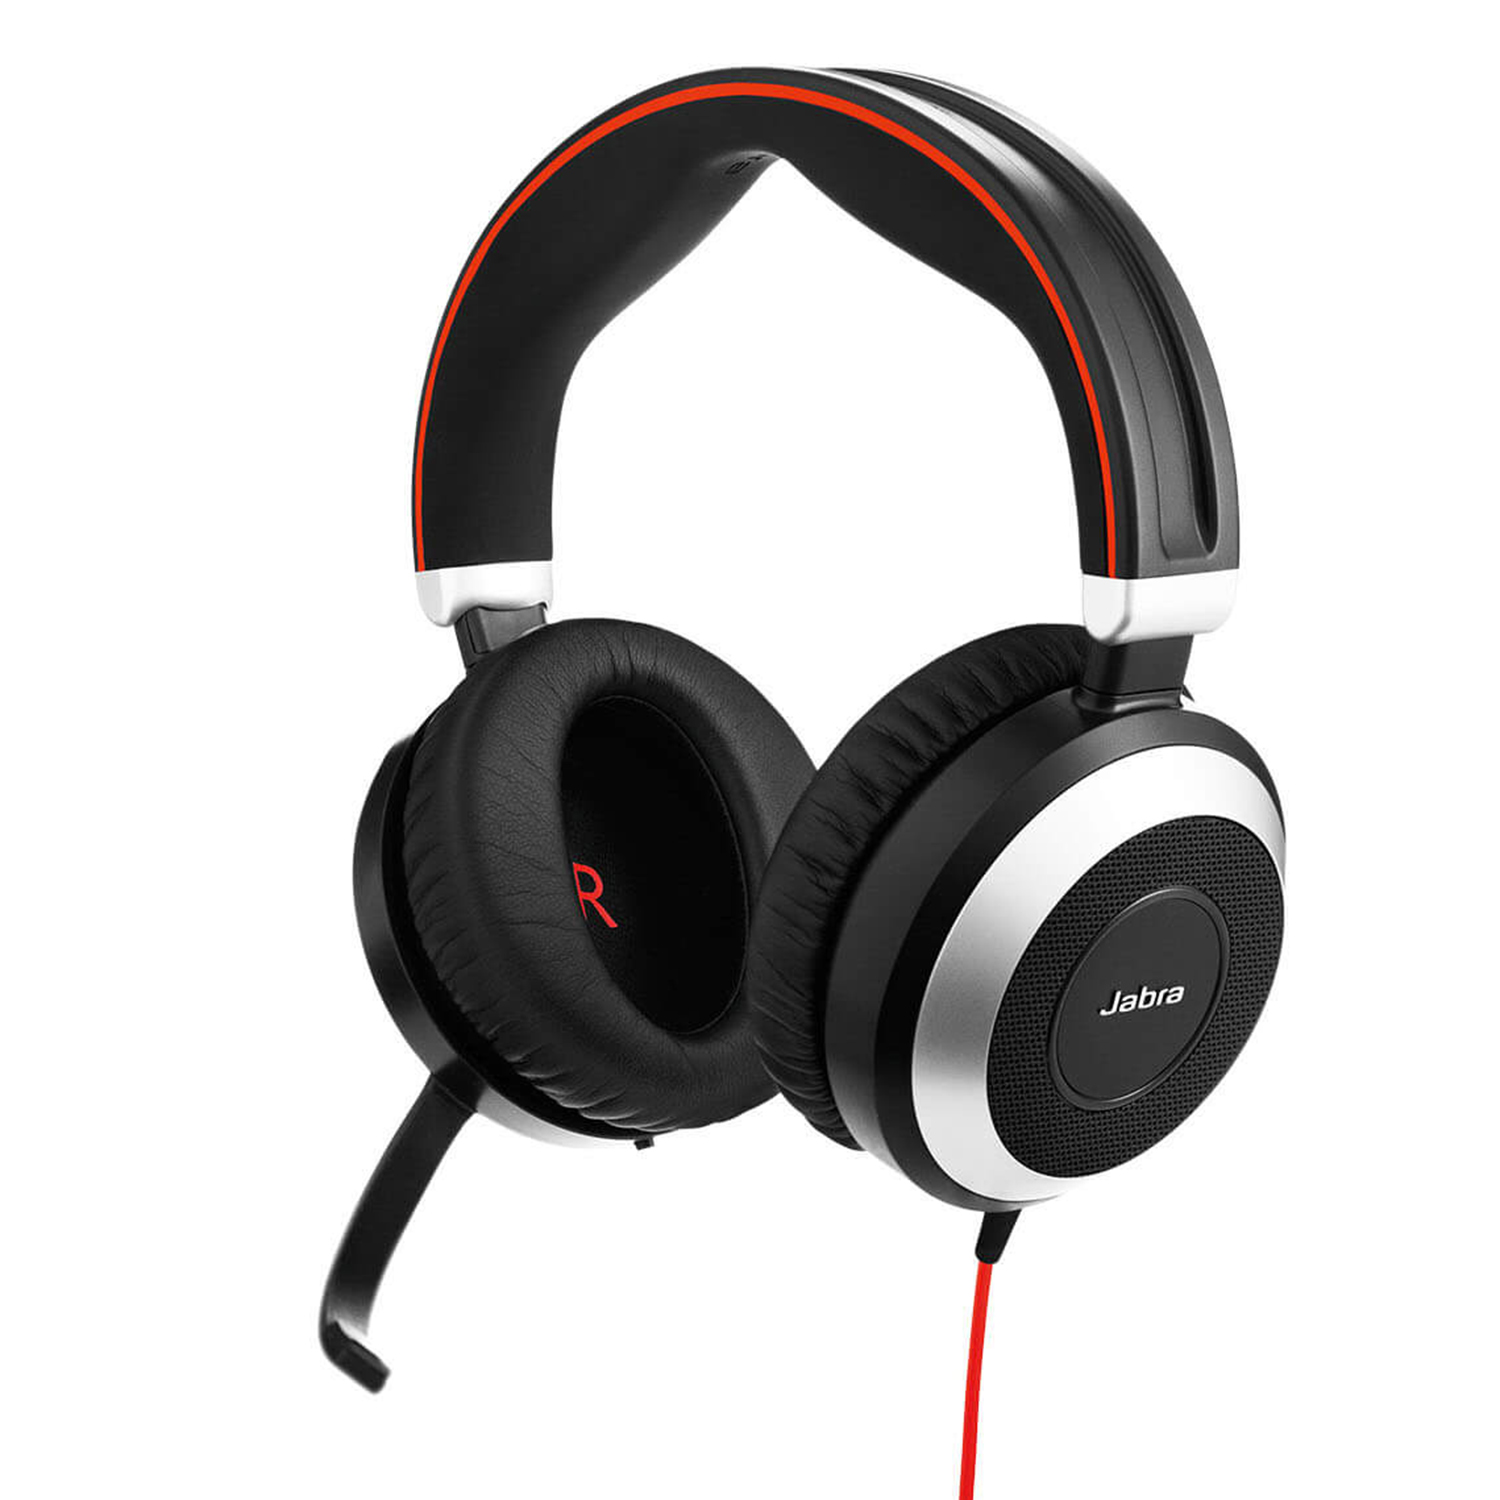 Jabra Evolve 80 Duo USB and 3.5mm MS Headset